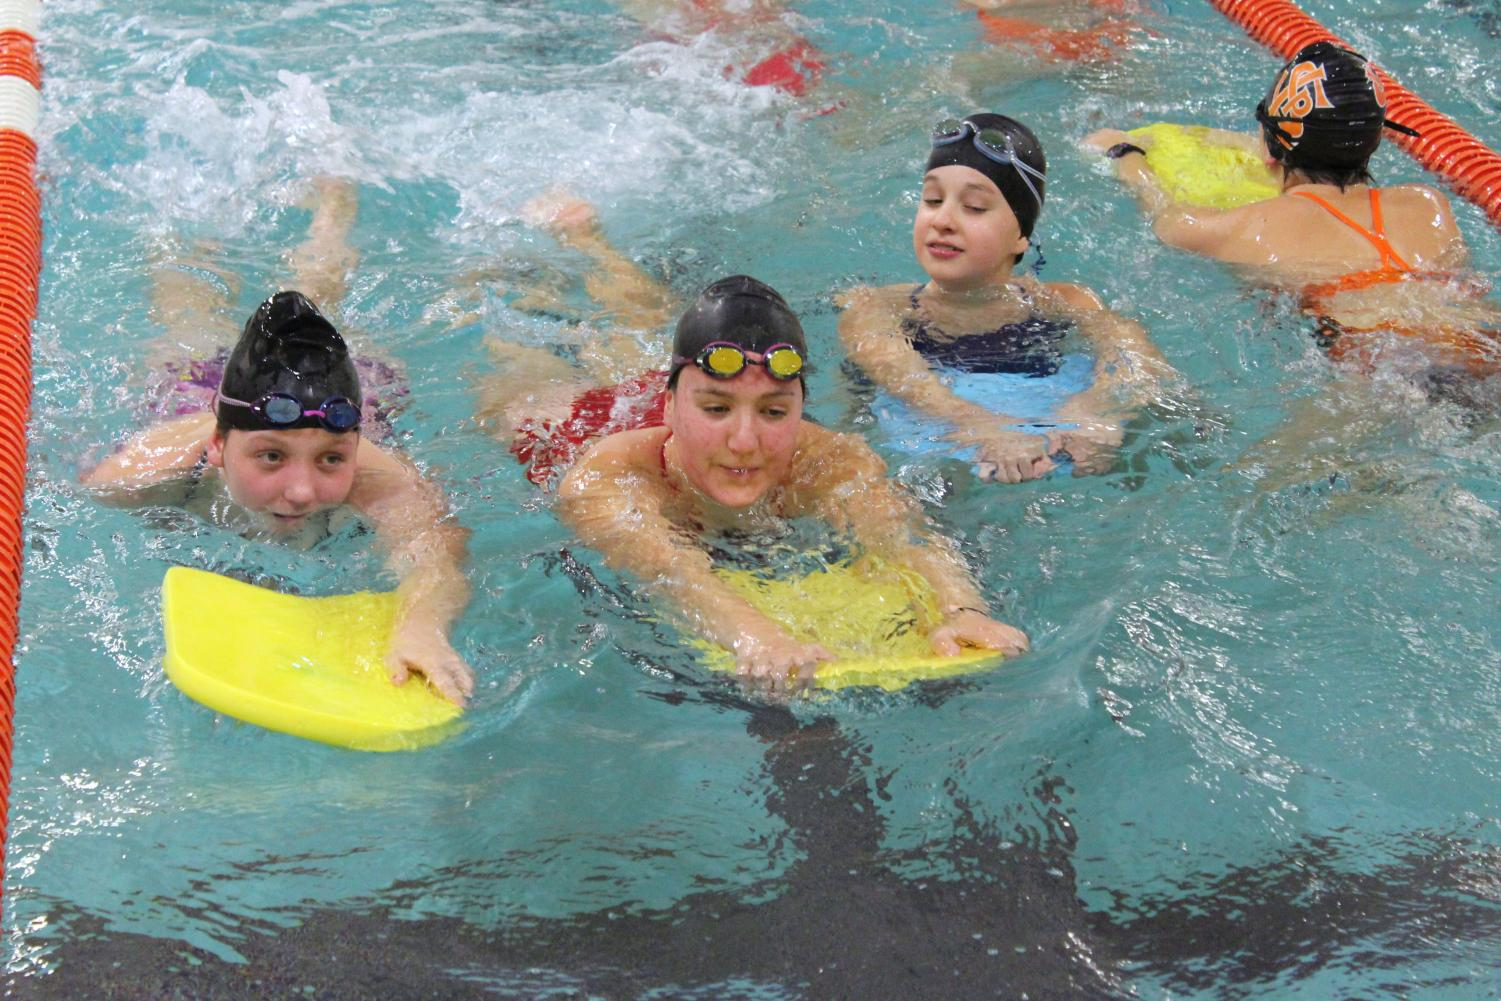 Eighth graders Quinn Hartnett, Caroline Forester and Stephanie Stone warm up in the swimming pool on kickboards during practice Oct. 22. Earlier this year the swimming pool wasn't its usual temperature.